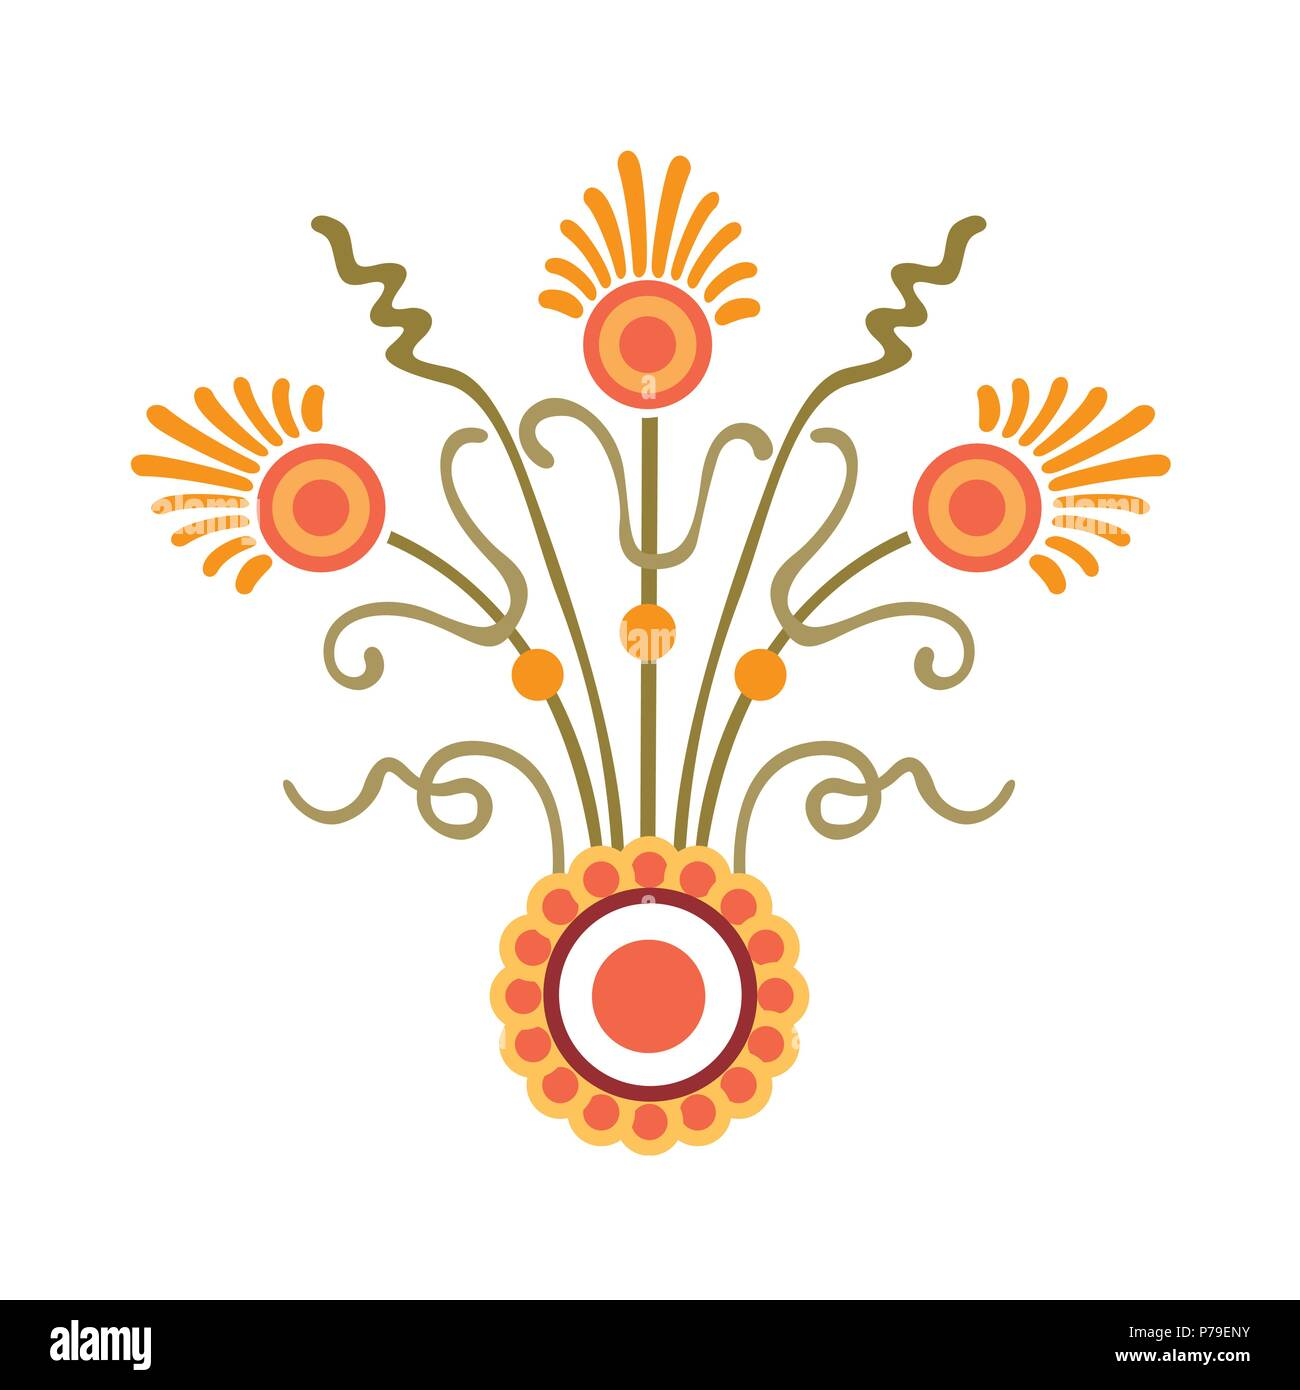 Freehand Drawing Flowers And Plants Bouquet Classical Stock Vector Image Art Alamy